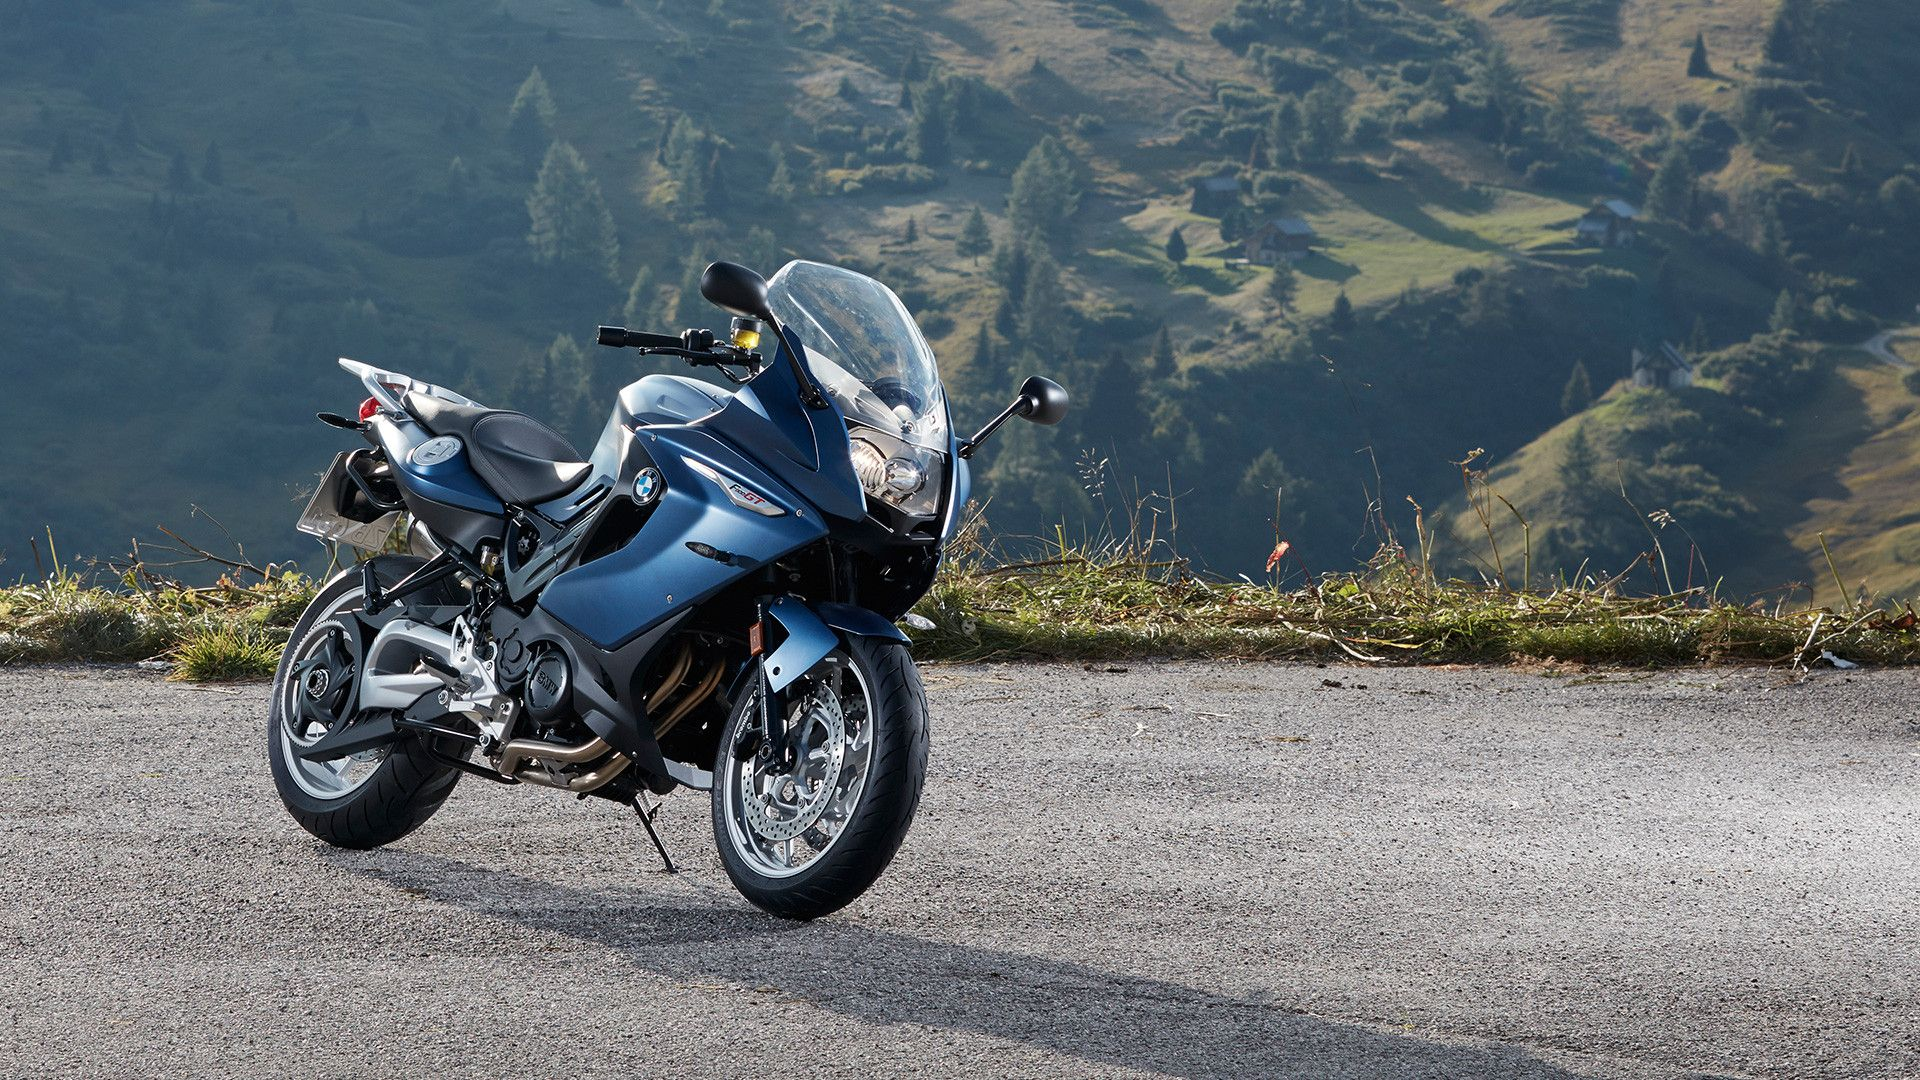 Bmw F800gt 2020 Review And Specs